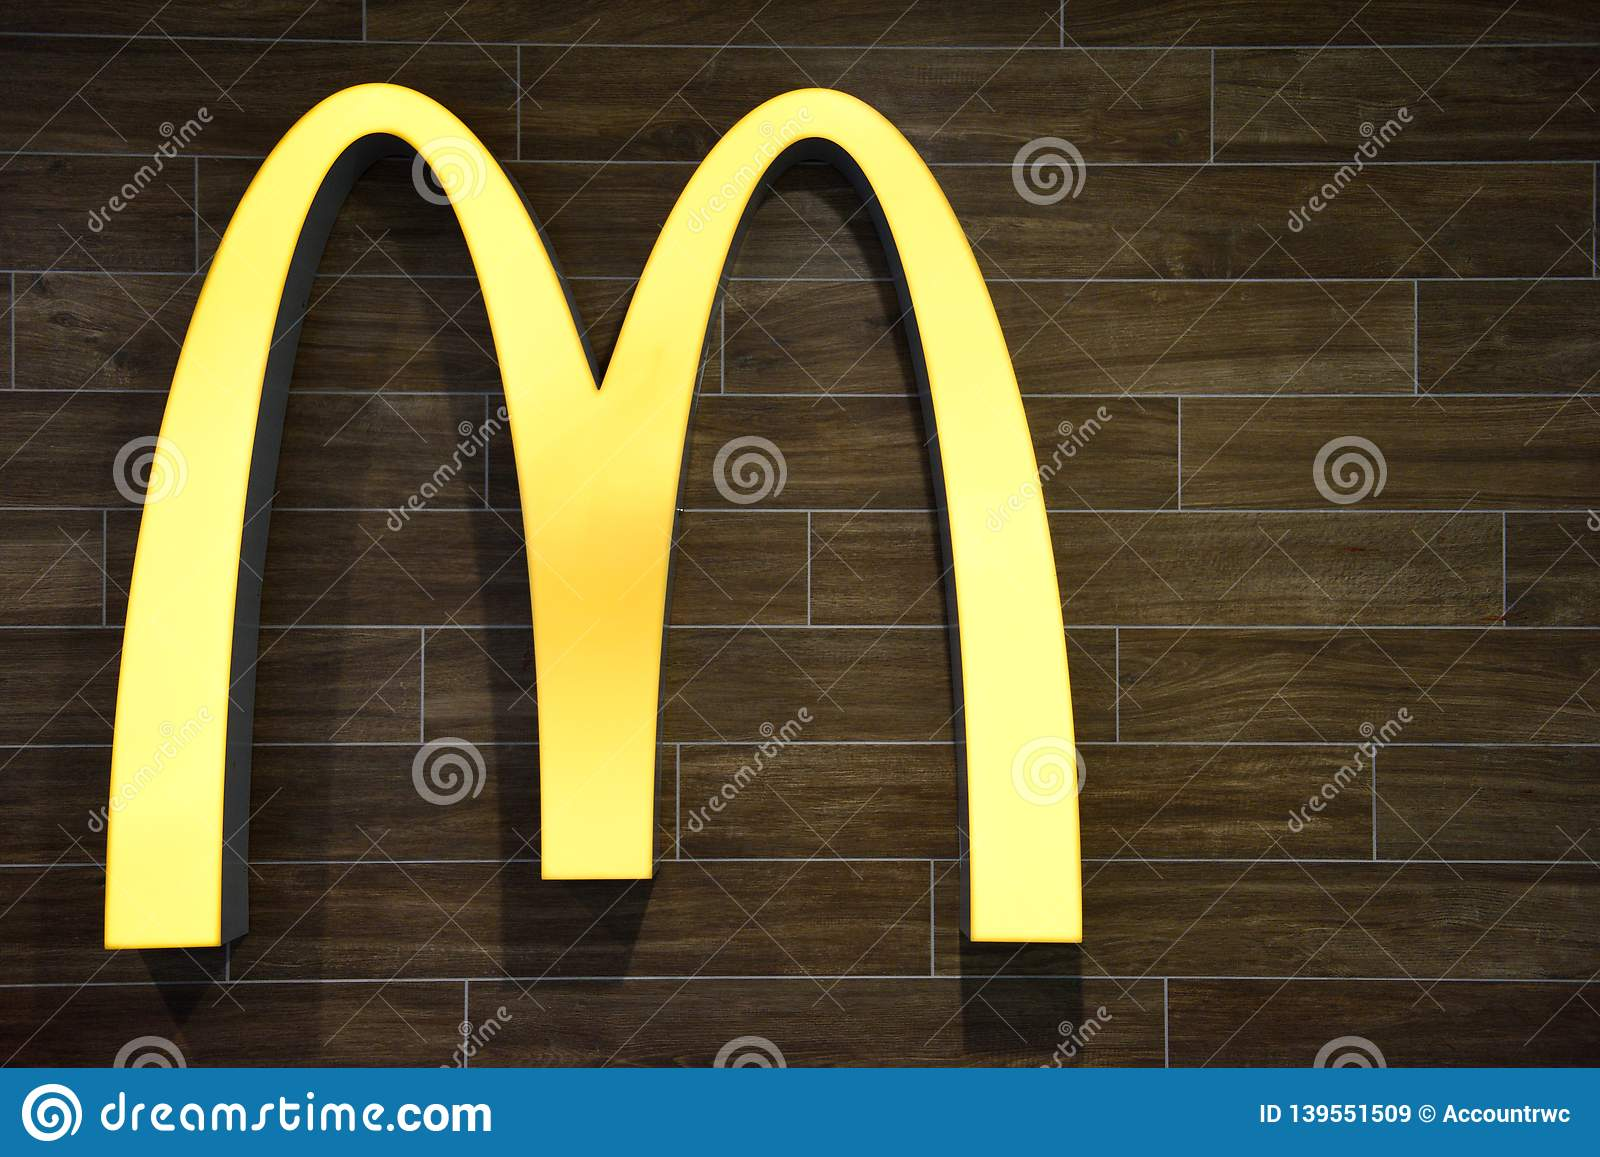 The Famous Iconic McDonald`s Golden Arches Corporate Logo ...